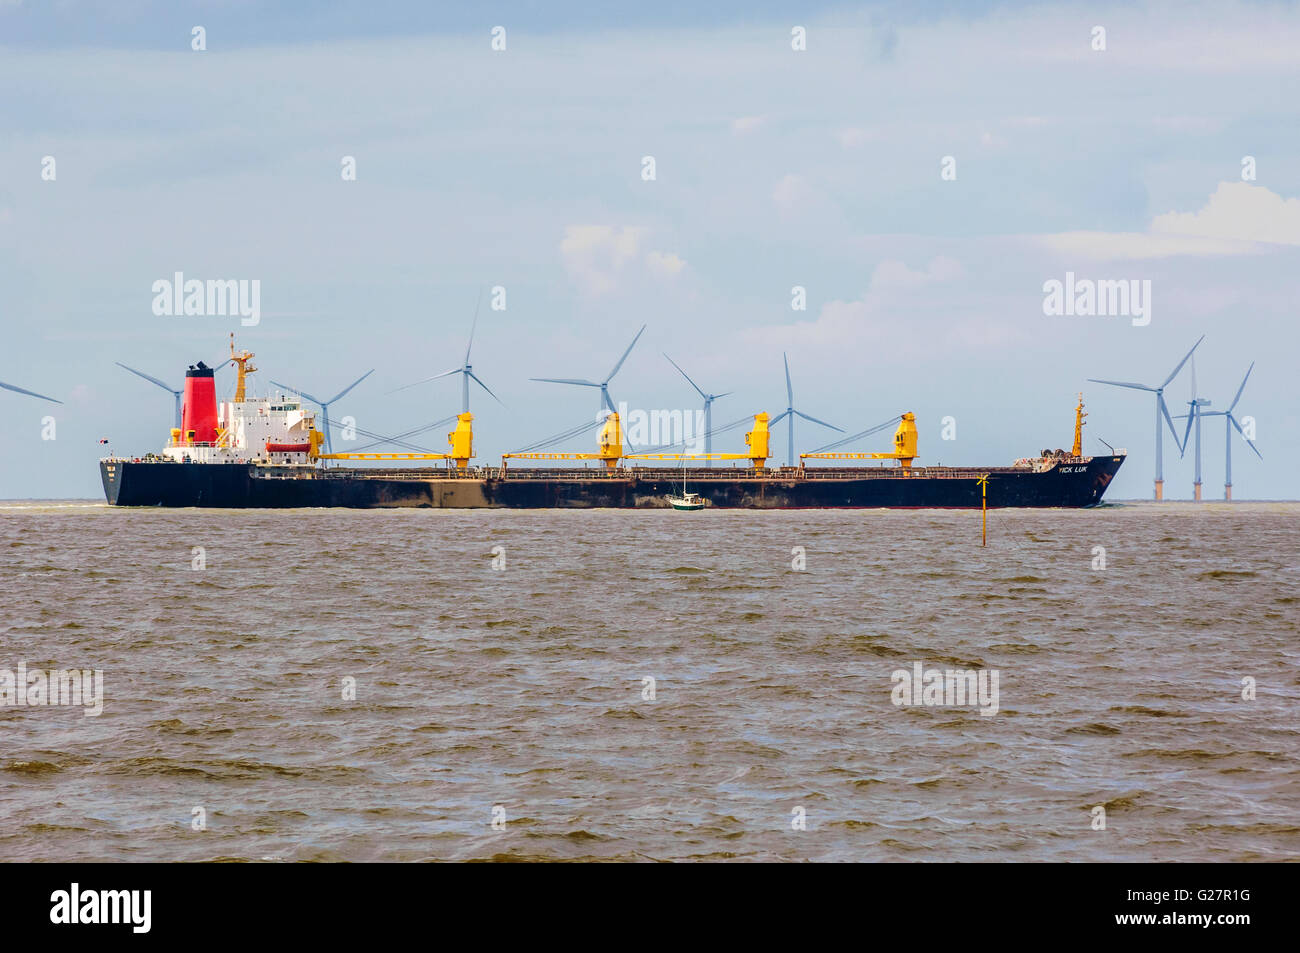 Bulk carrier Yick Luk passing in front of offshore windfarm seen from Crosby Merseyside - Stock Image